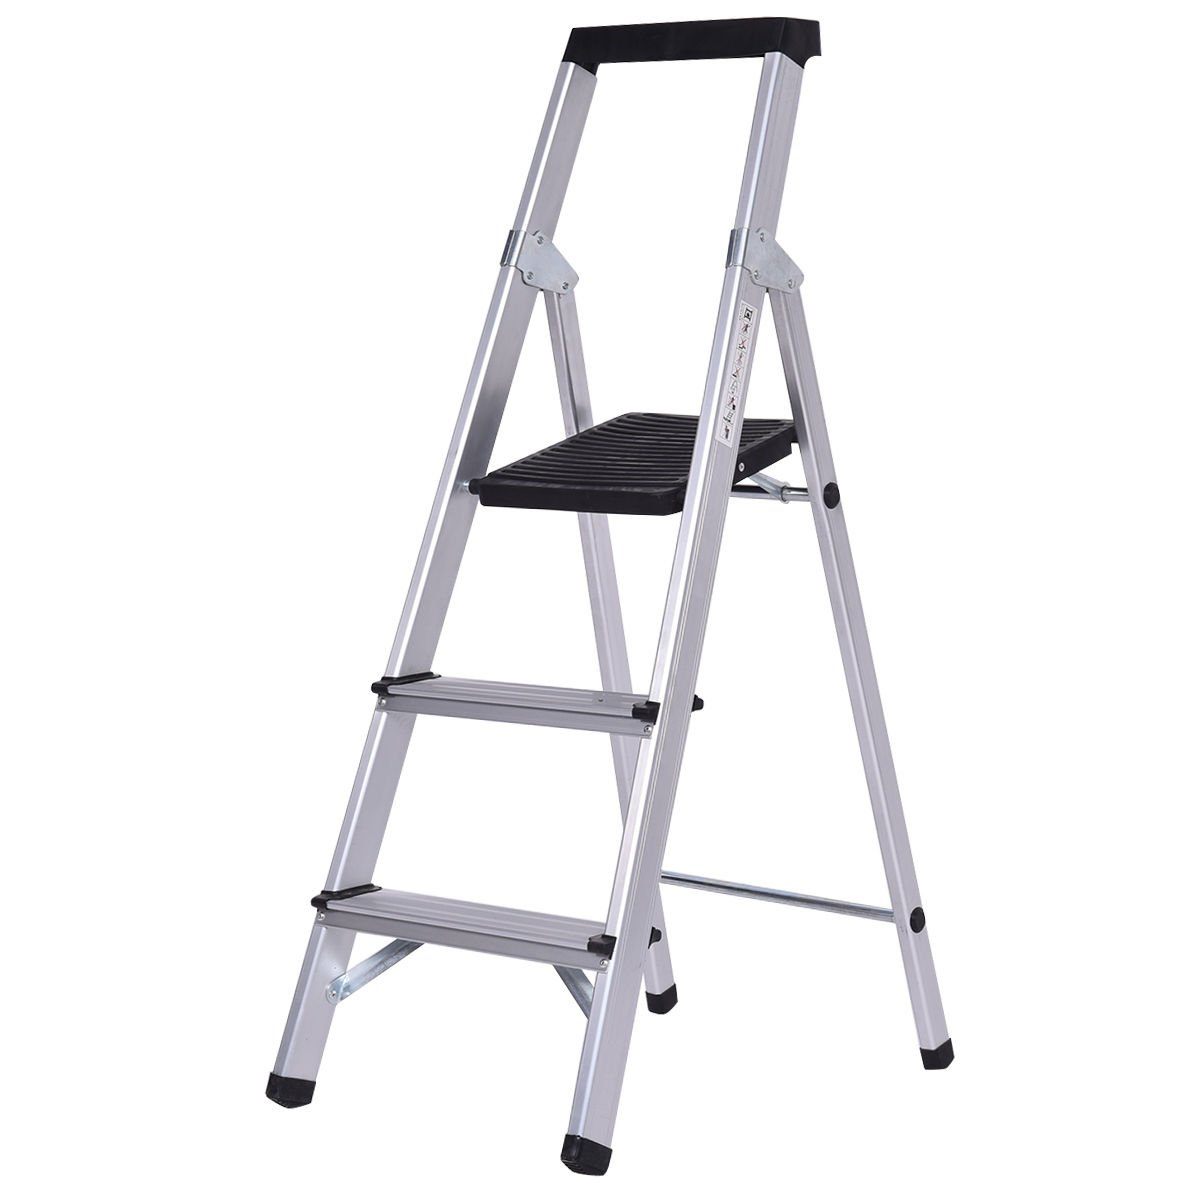 AyaMastro Foldable Aluminum 3 Step Ladder Work Stool with Ebook